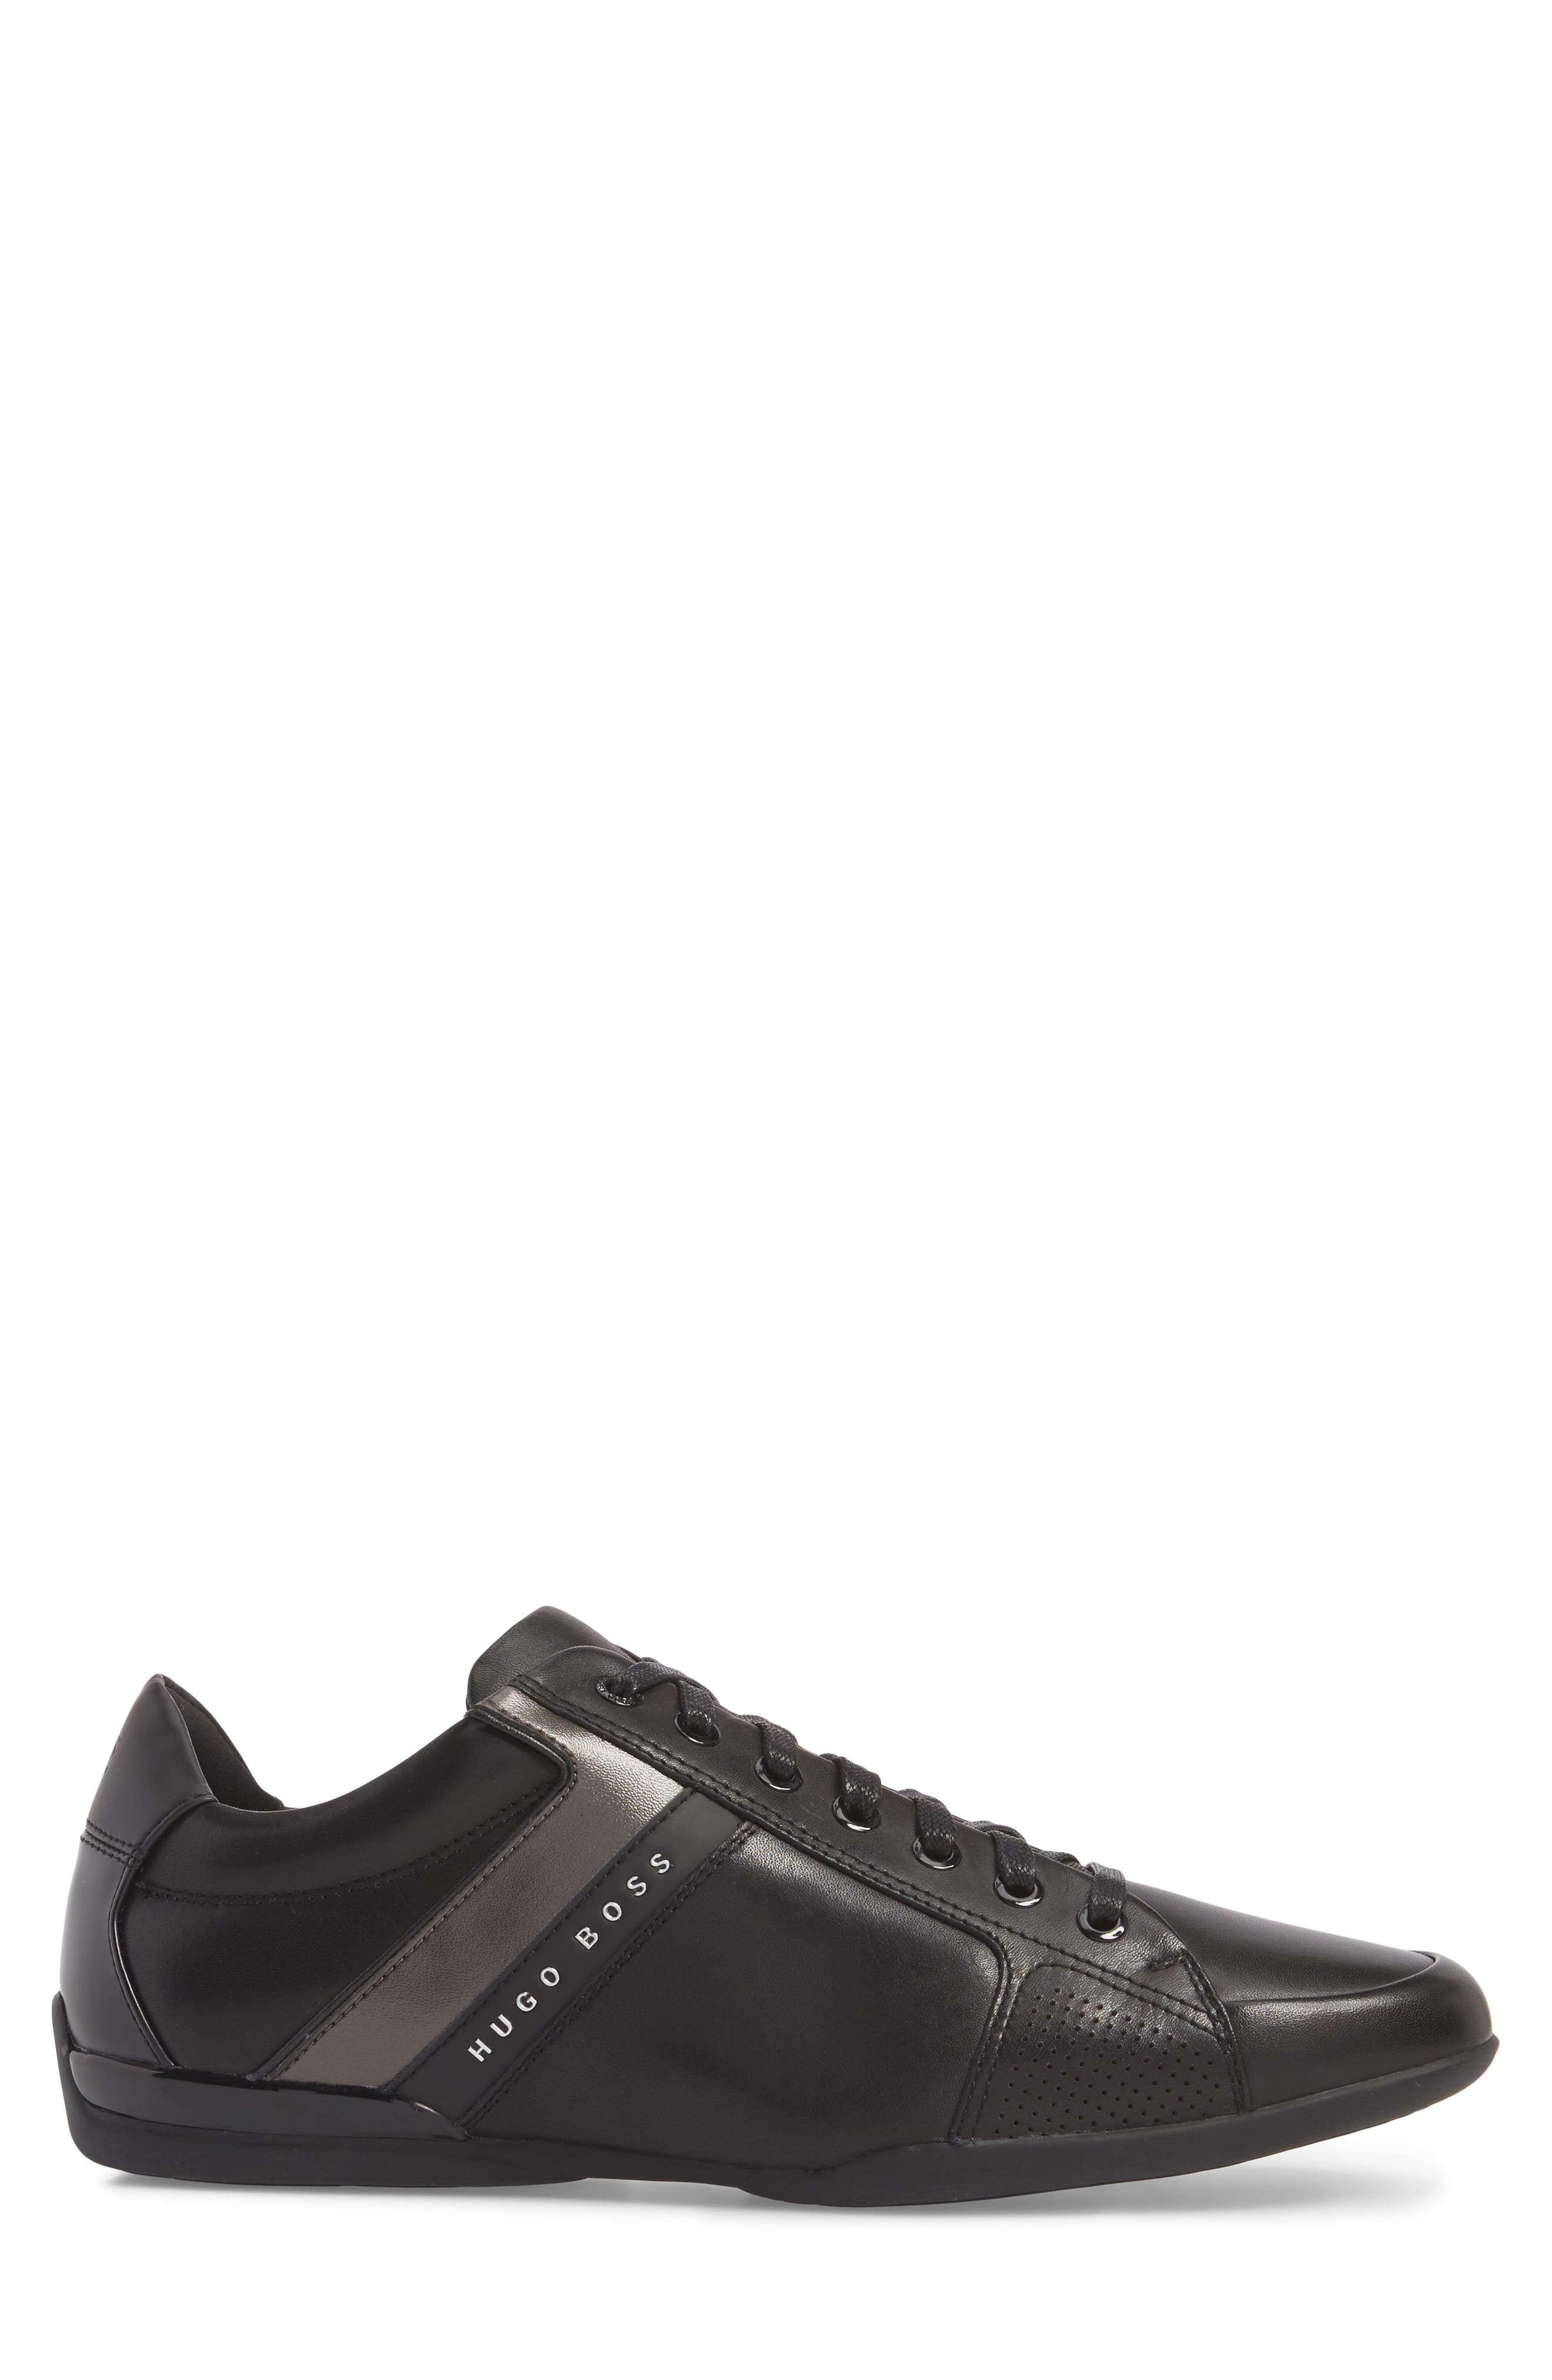 Space Lowp Lux Sneaker,                             Alternate thumbnail 3, color,                             001